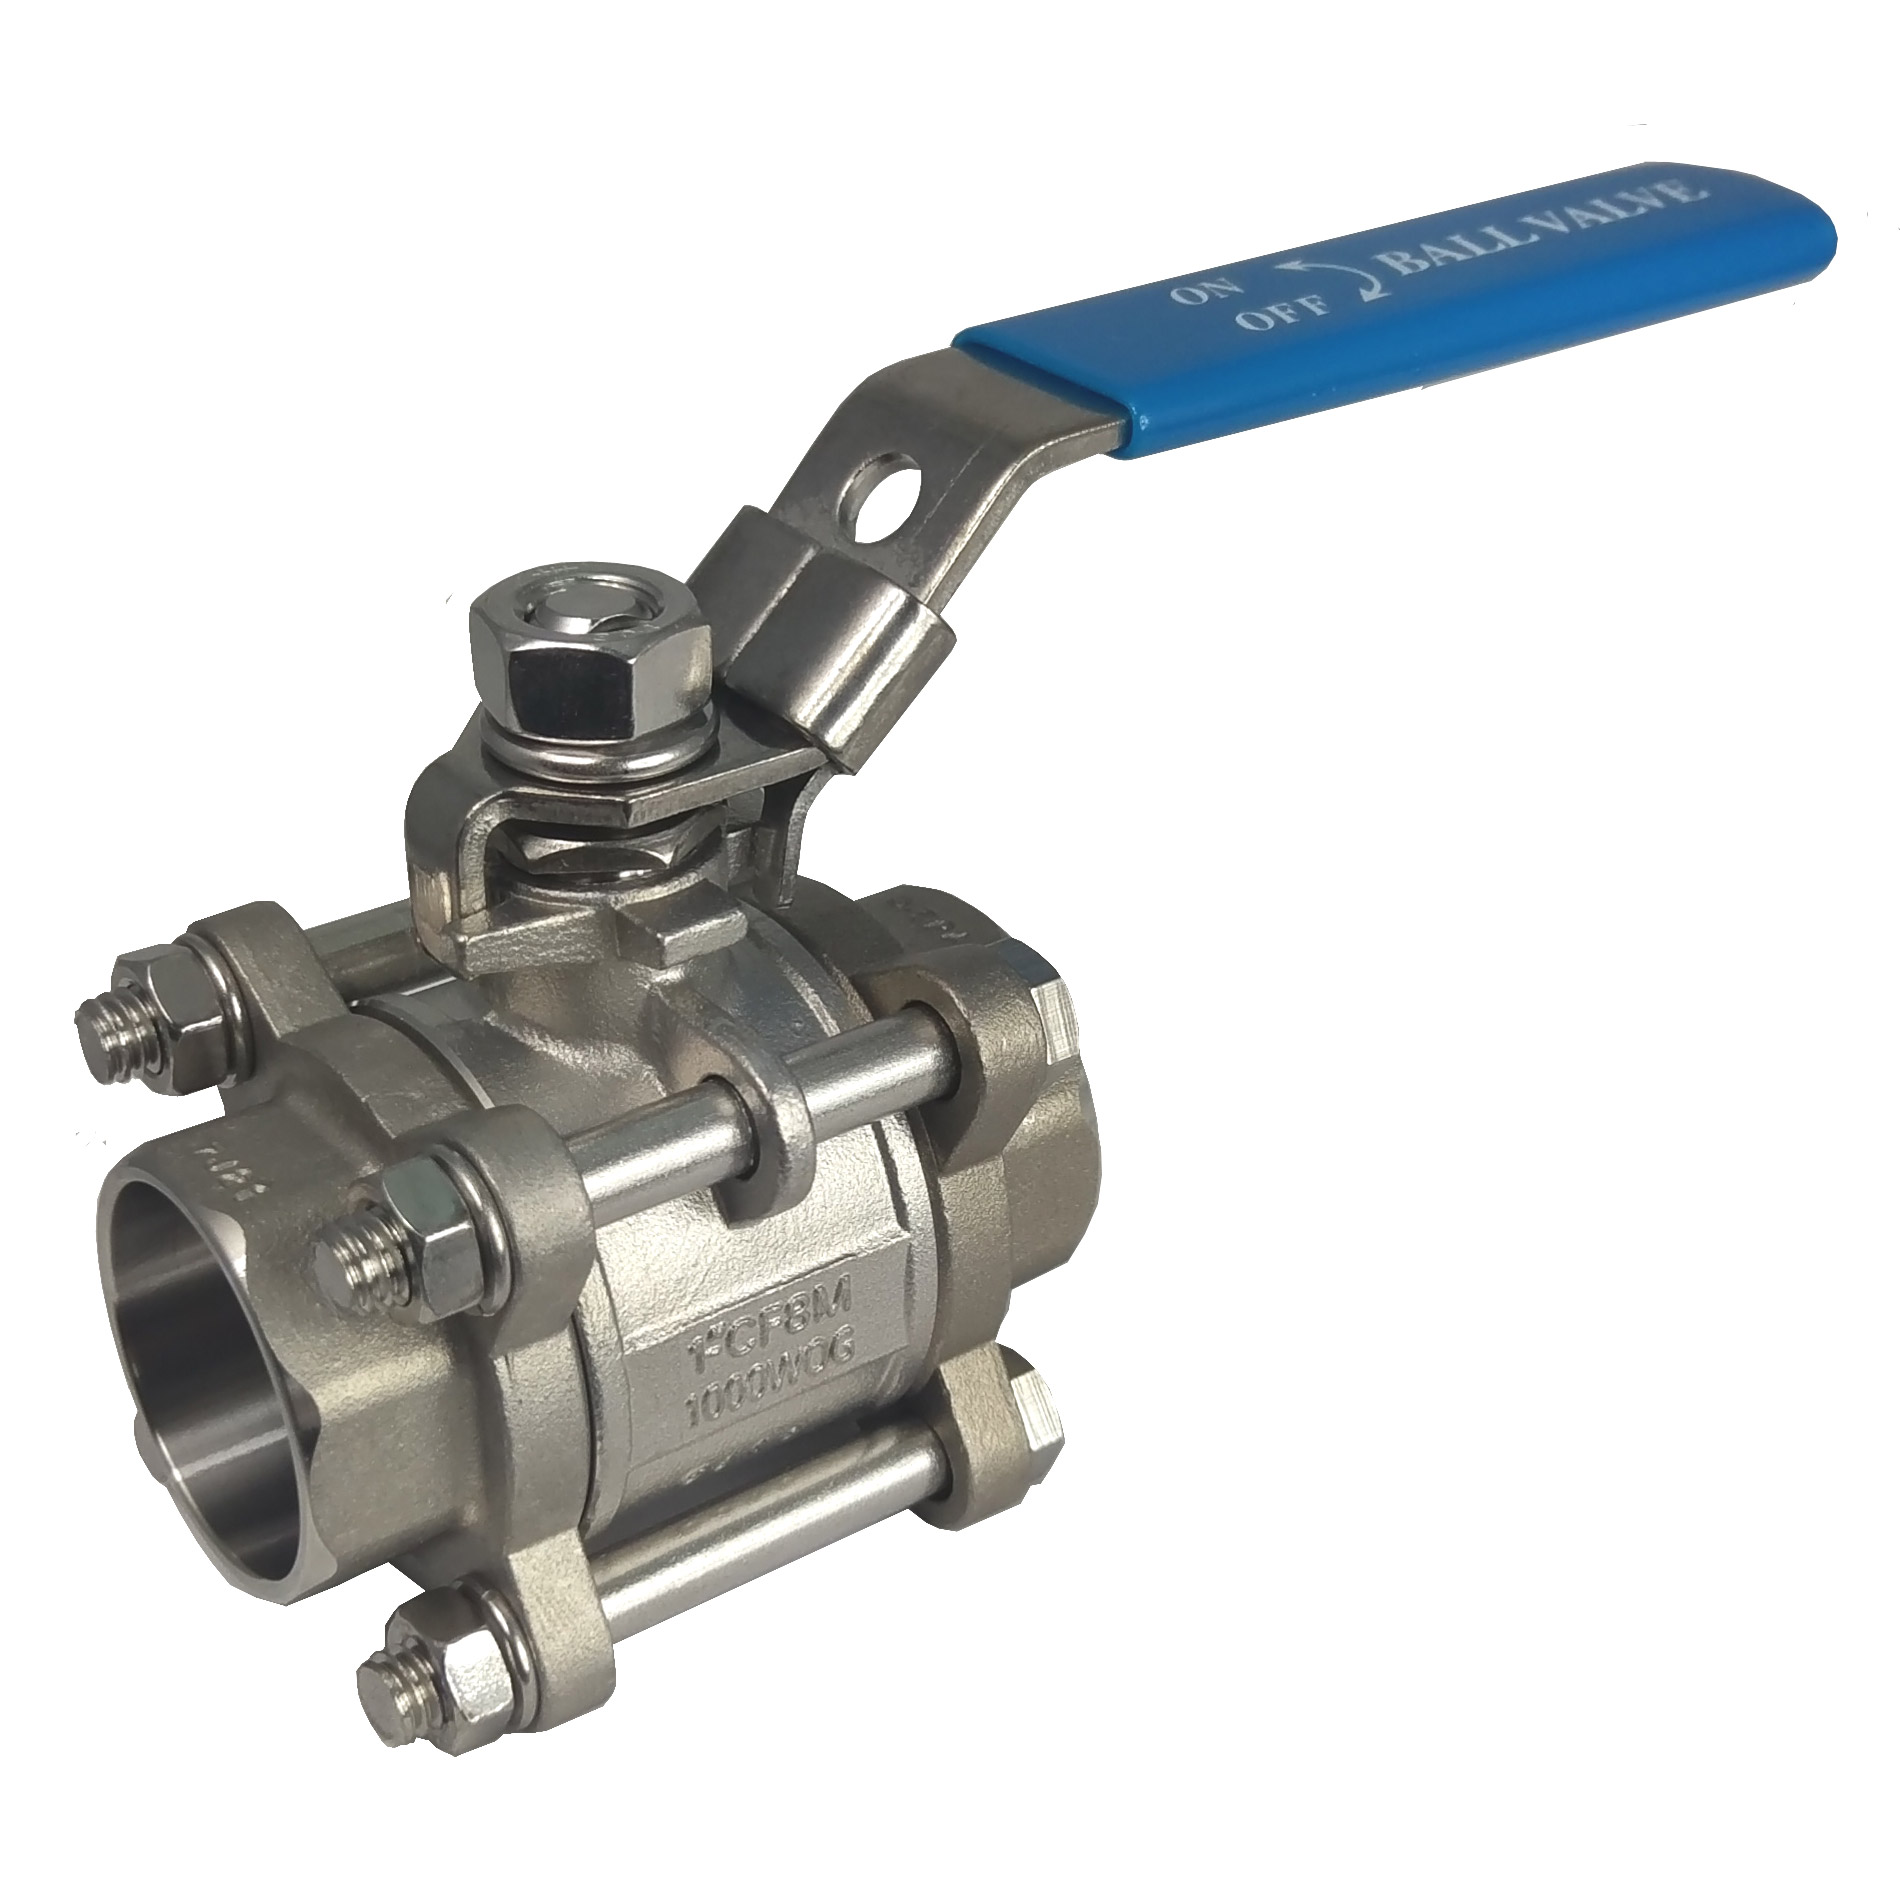 1/4-4 inch butt welding stainless steel carbon steel 3 piece ball valve 1000psi